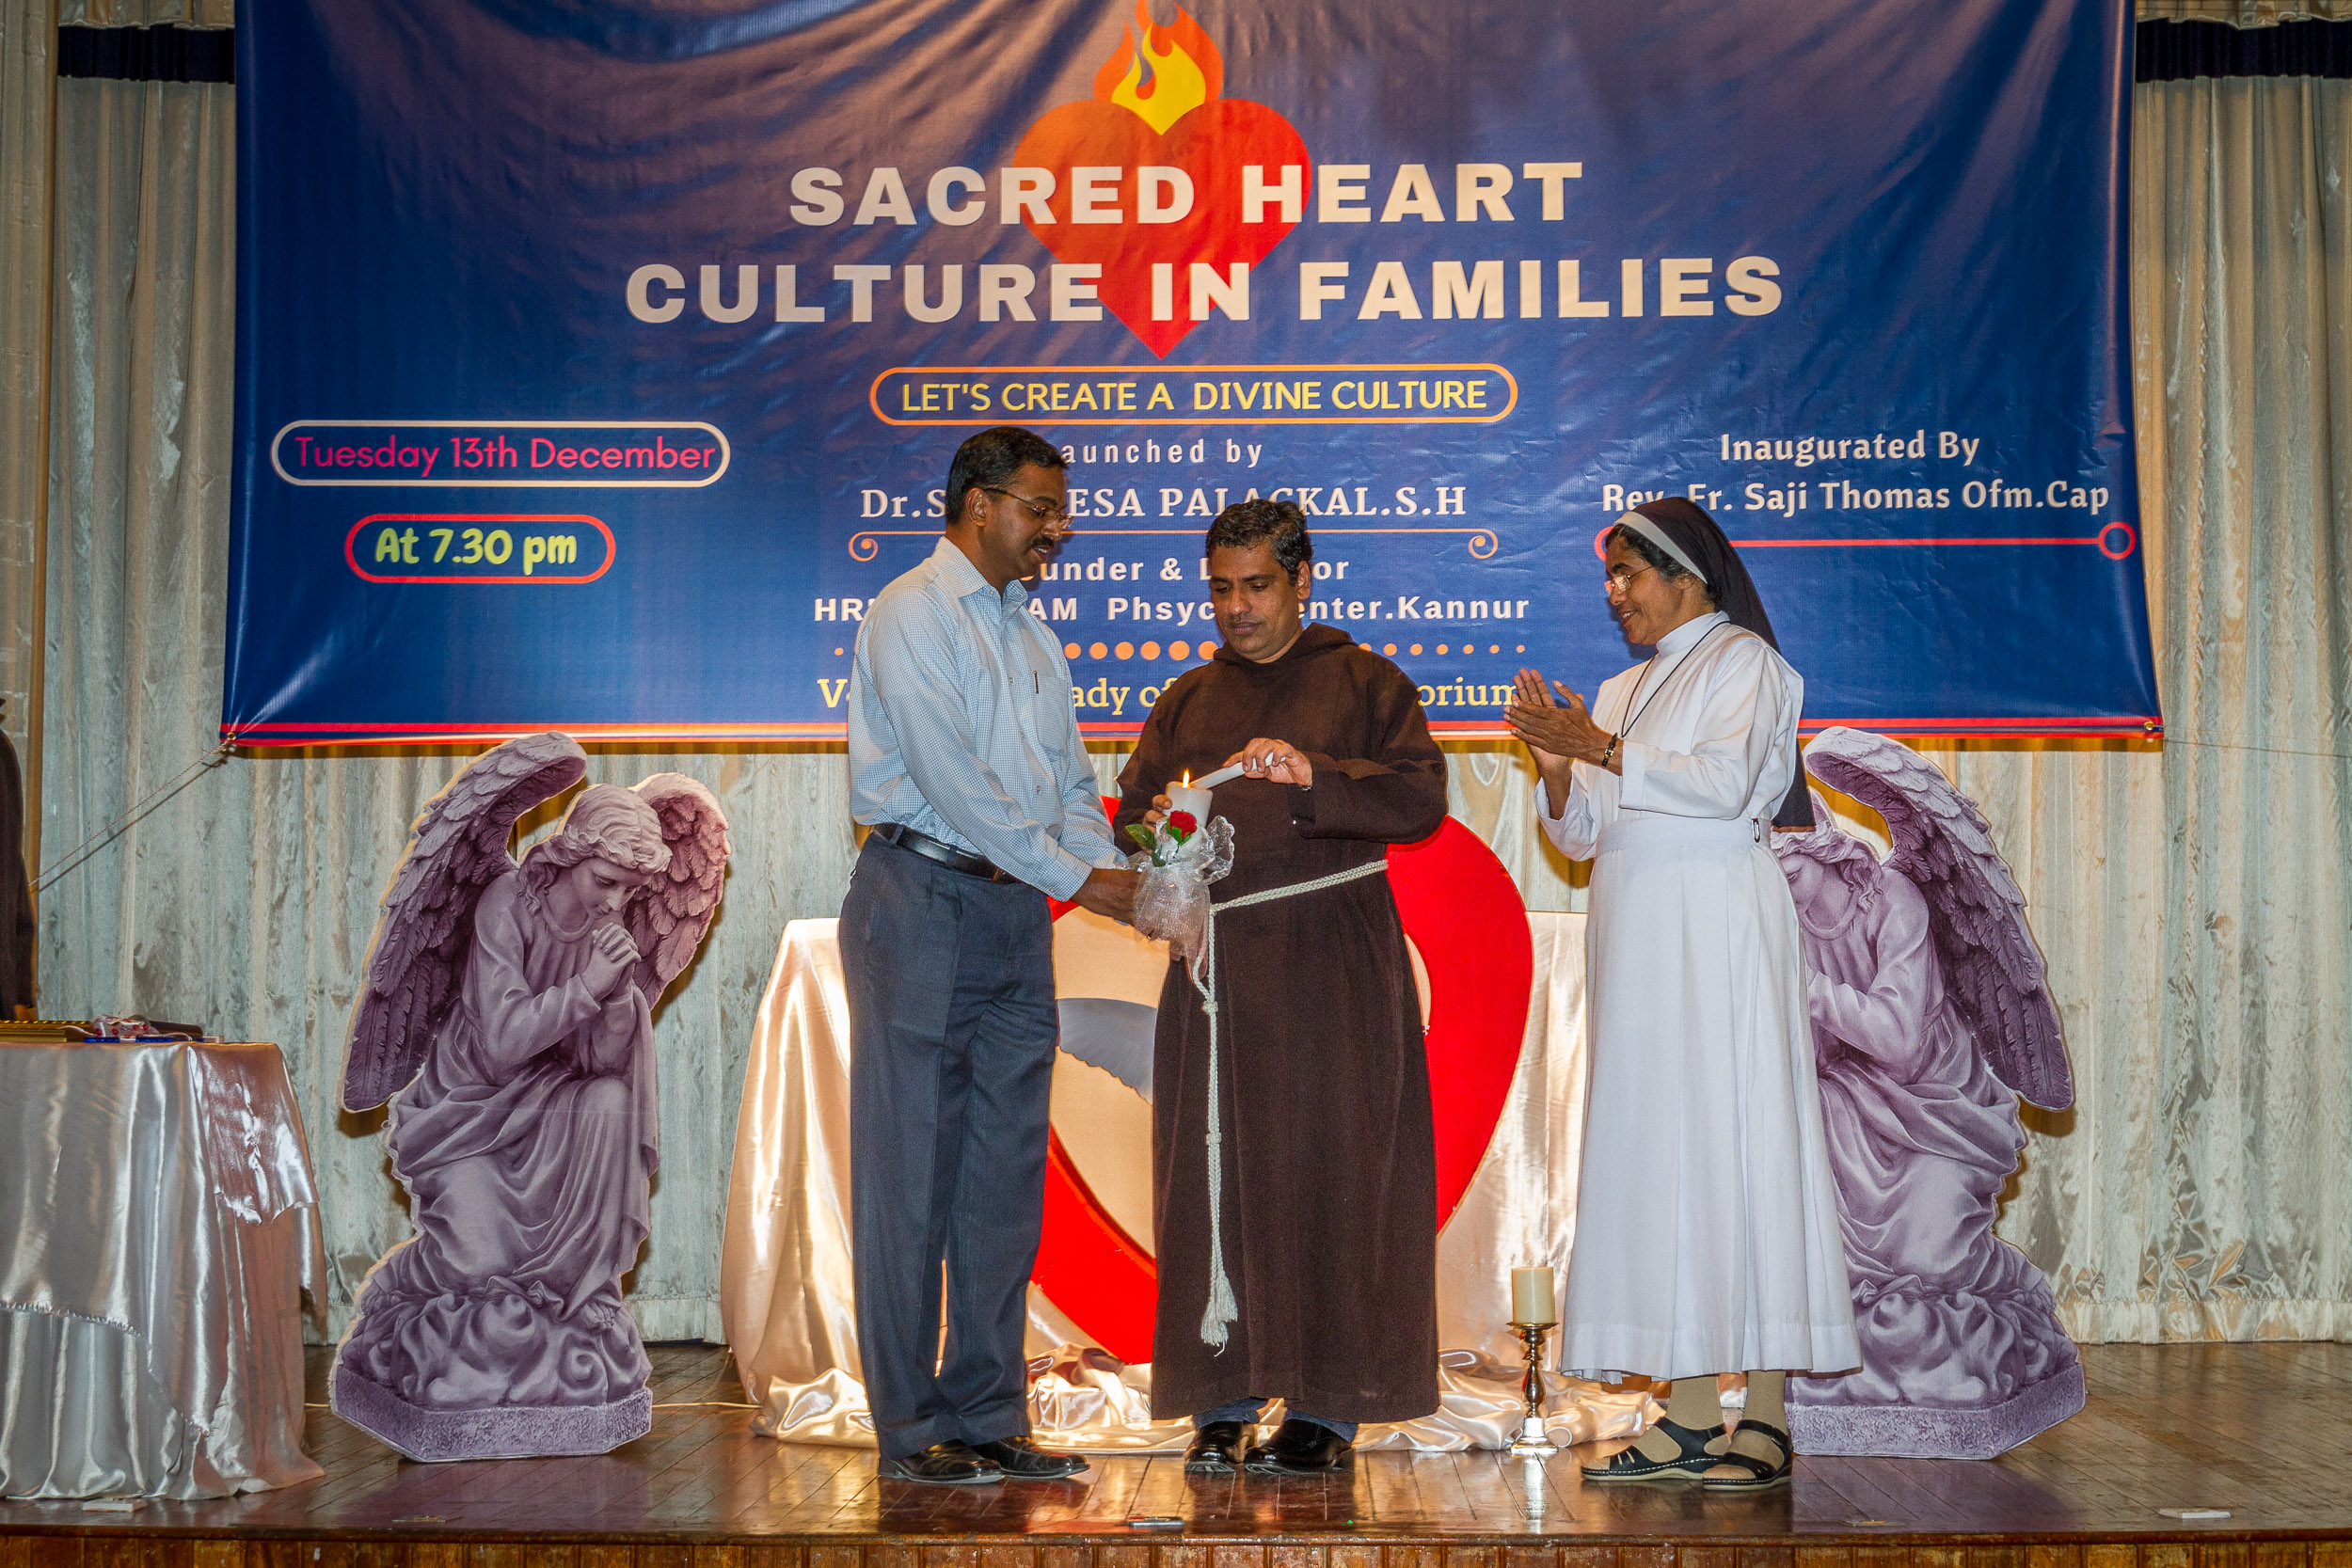 SACRED HEART CULTURE FOR FAMILIES